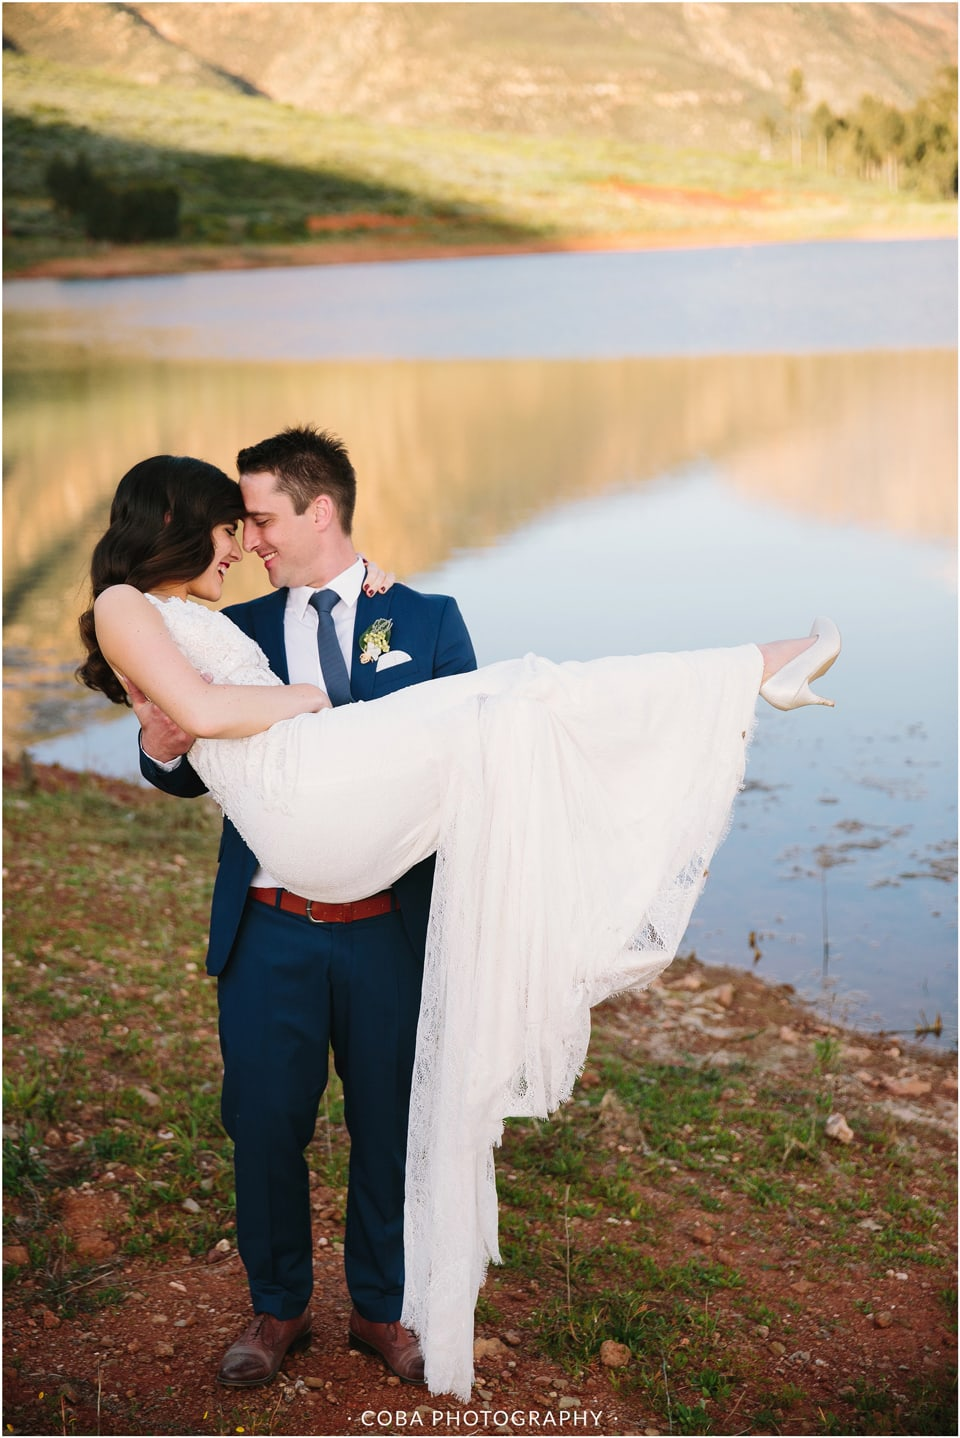 morne-rochelle-coba-photography-wedding-235